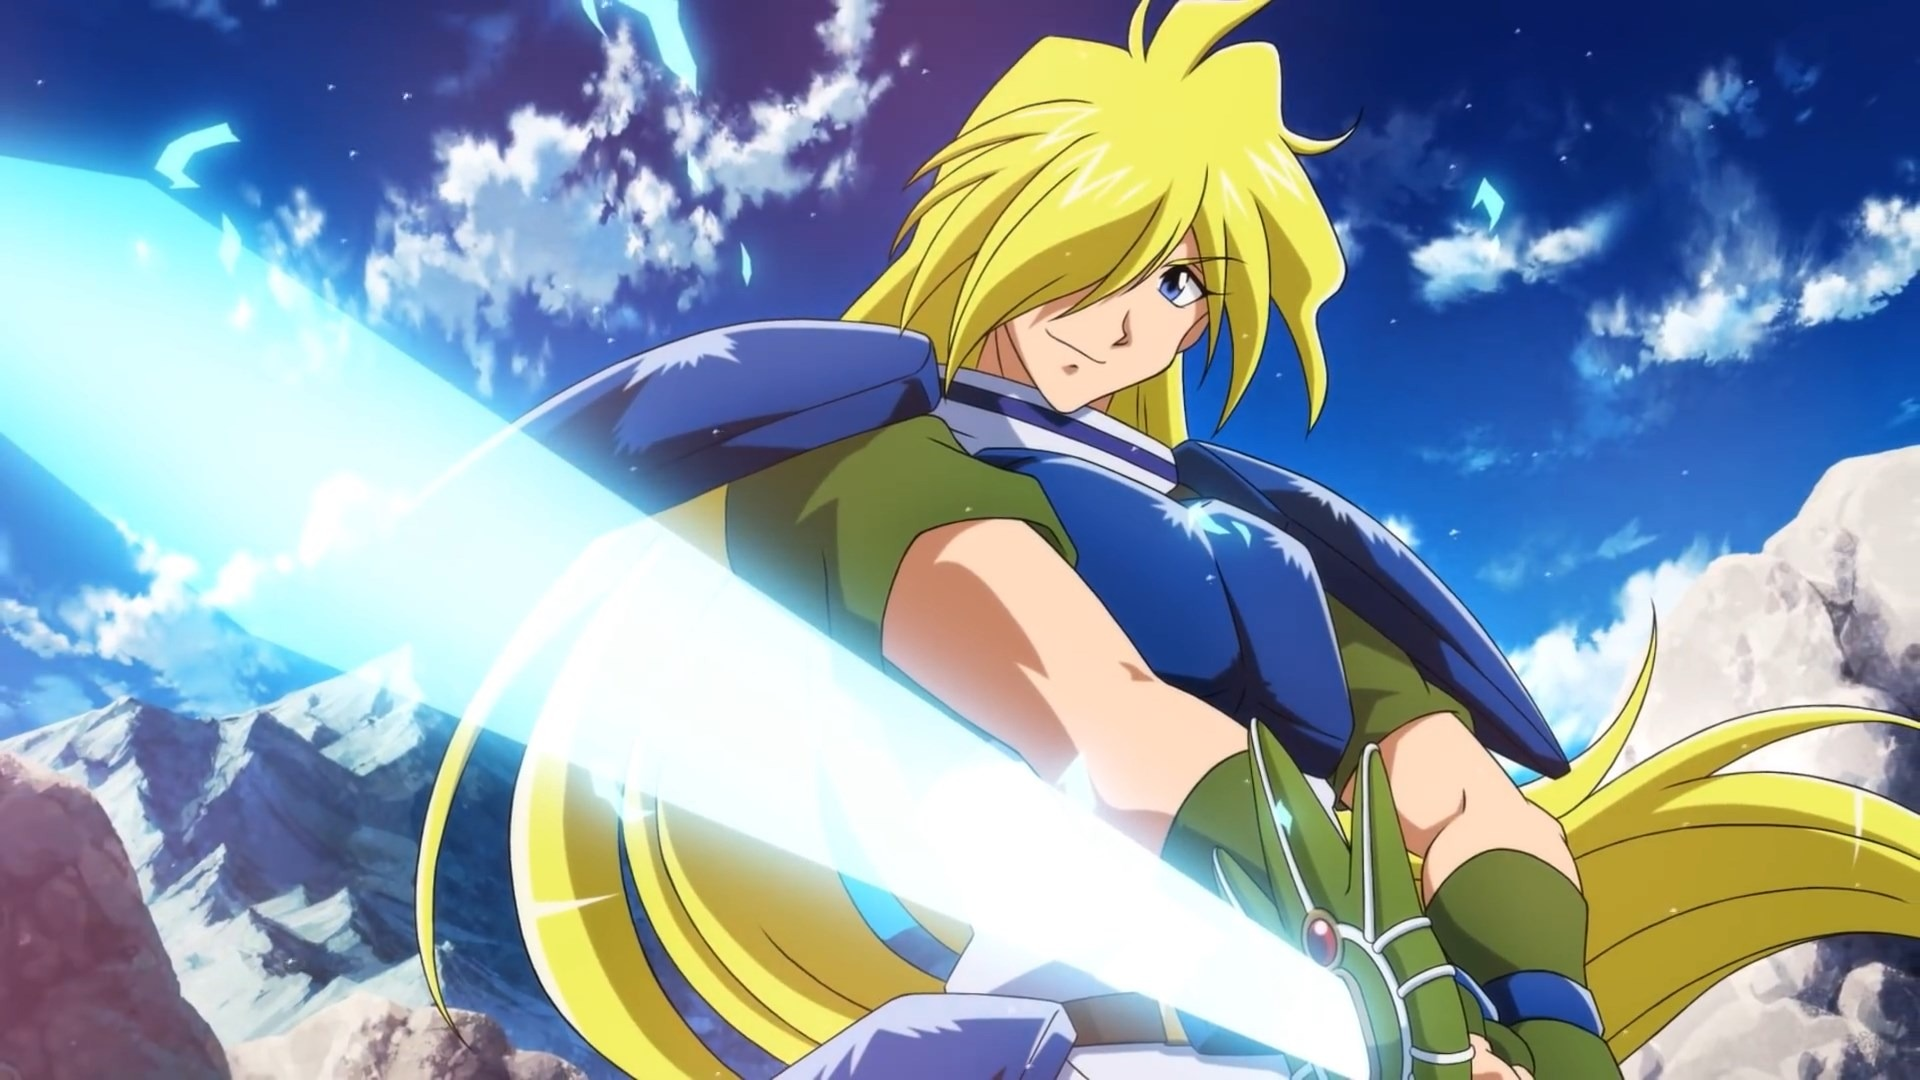 Gourry Gabriev of Slayers - a common sight in anime club